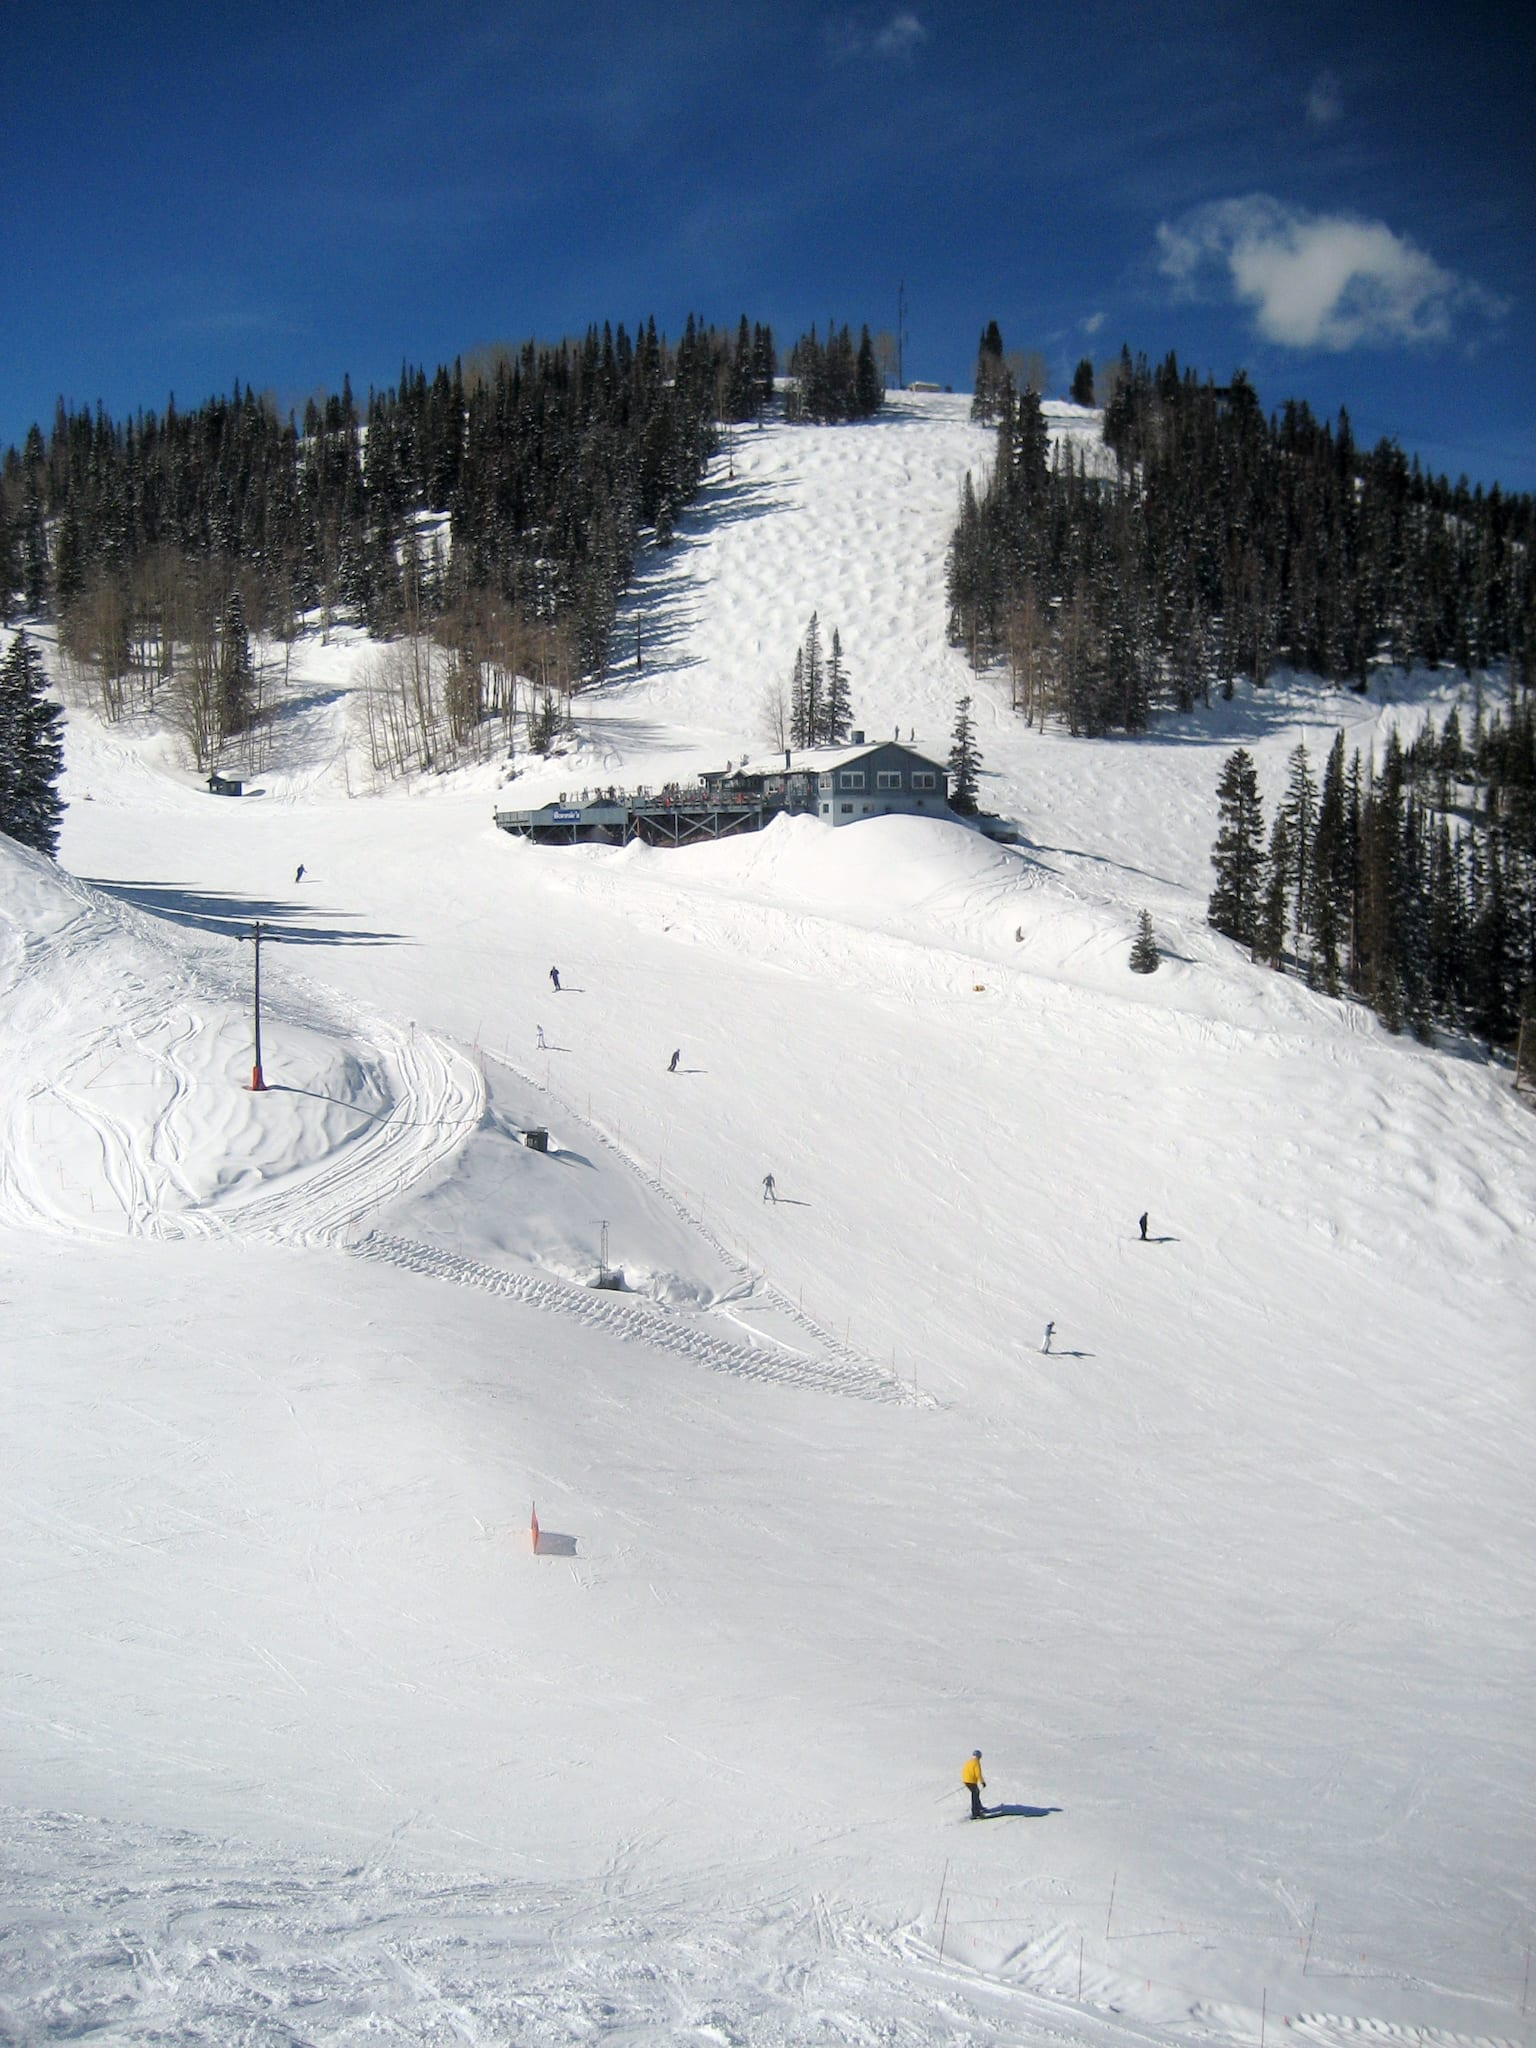 Aspen Mountain Bonnie's Restaurant View from Ajax Express Chairlift